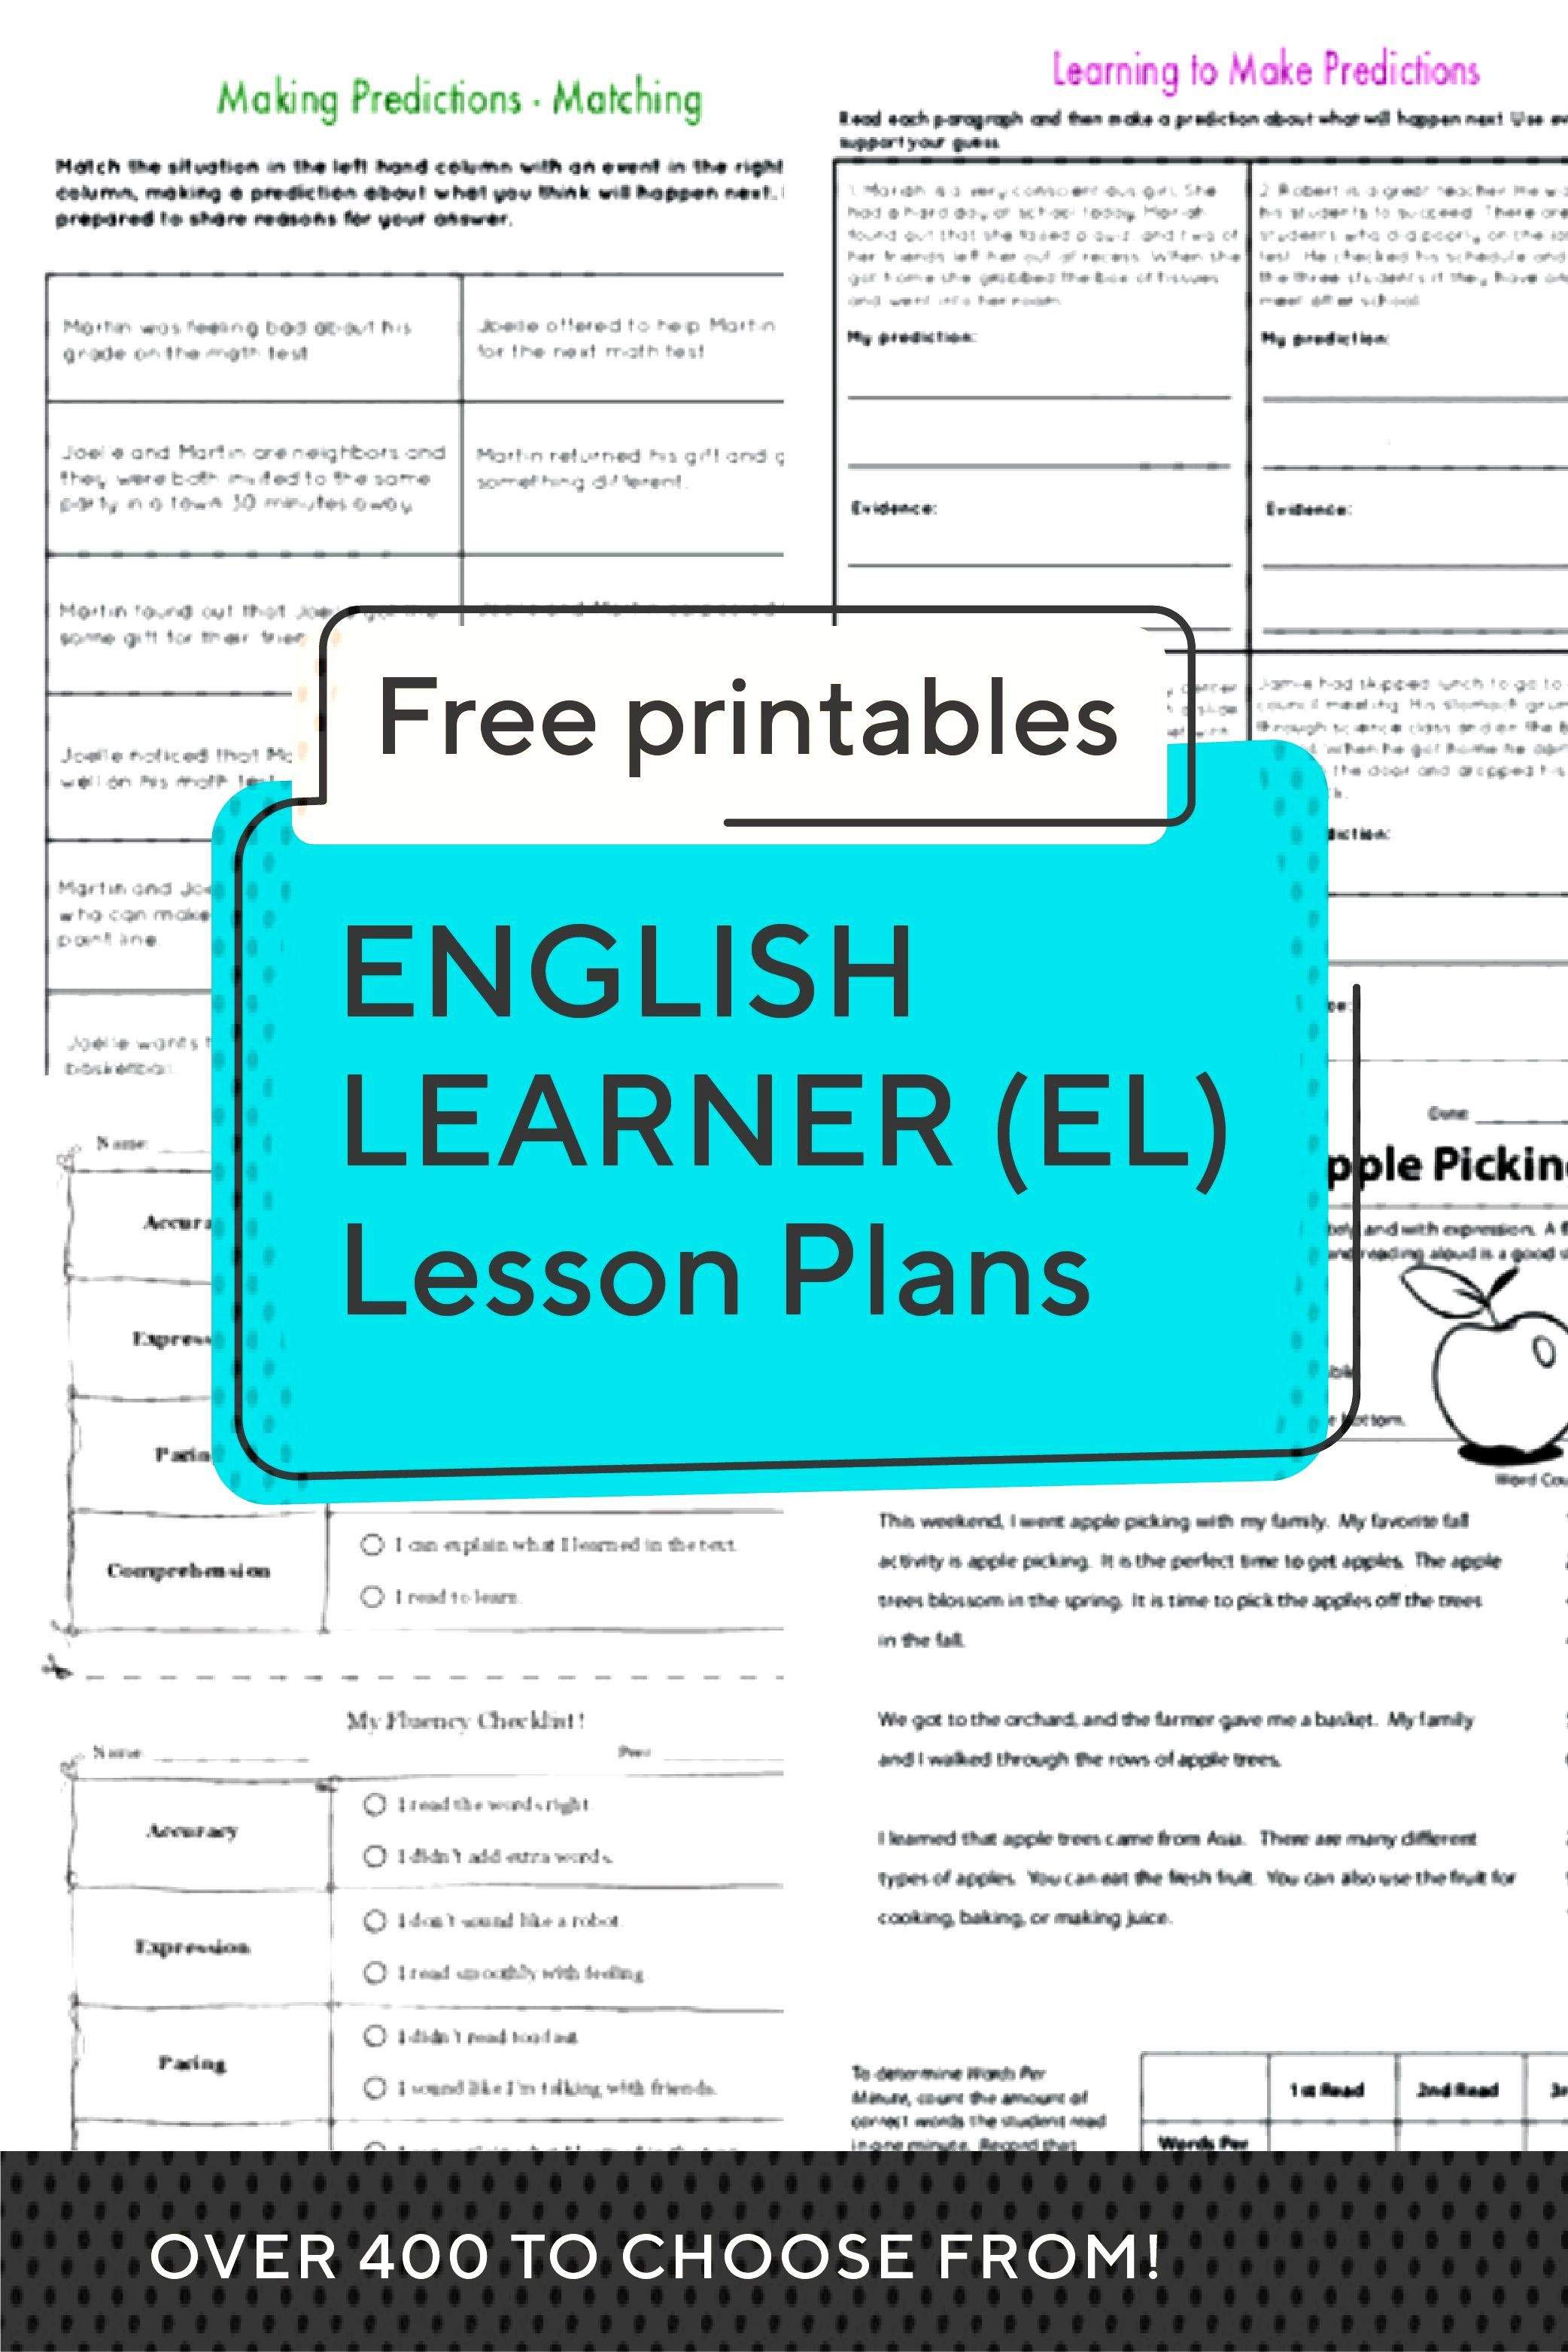 English Learner (EL) Lesson Plans | Access more than 400 lesson plans for preschool through grade 5